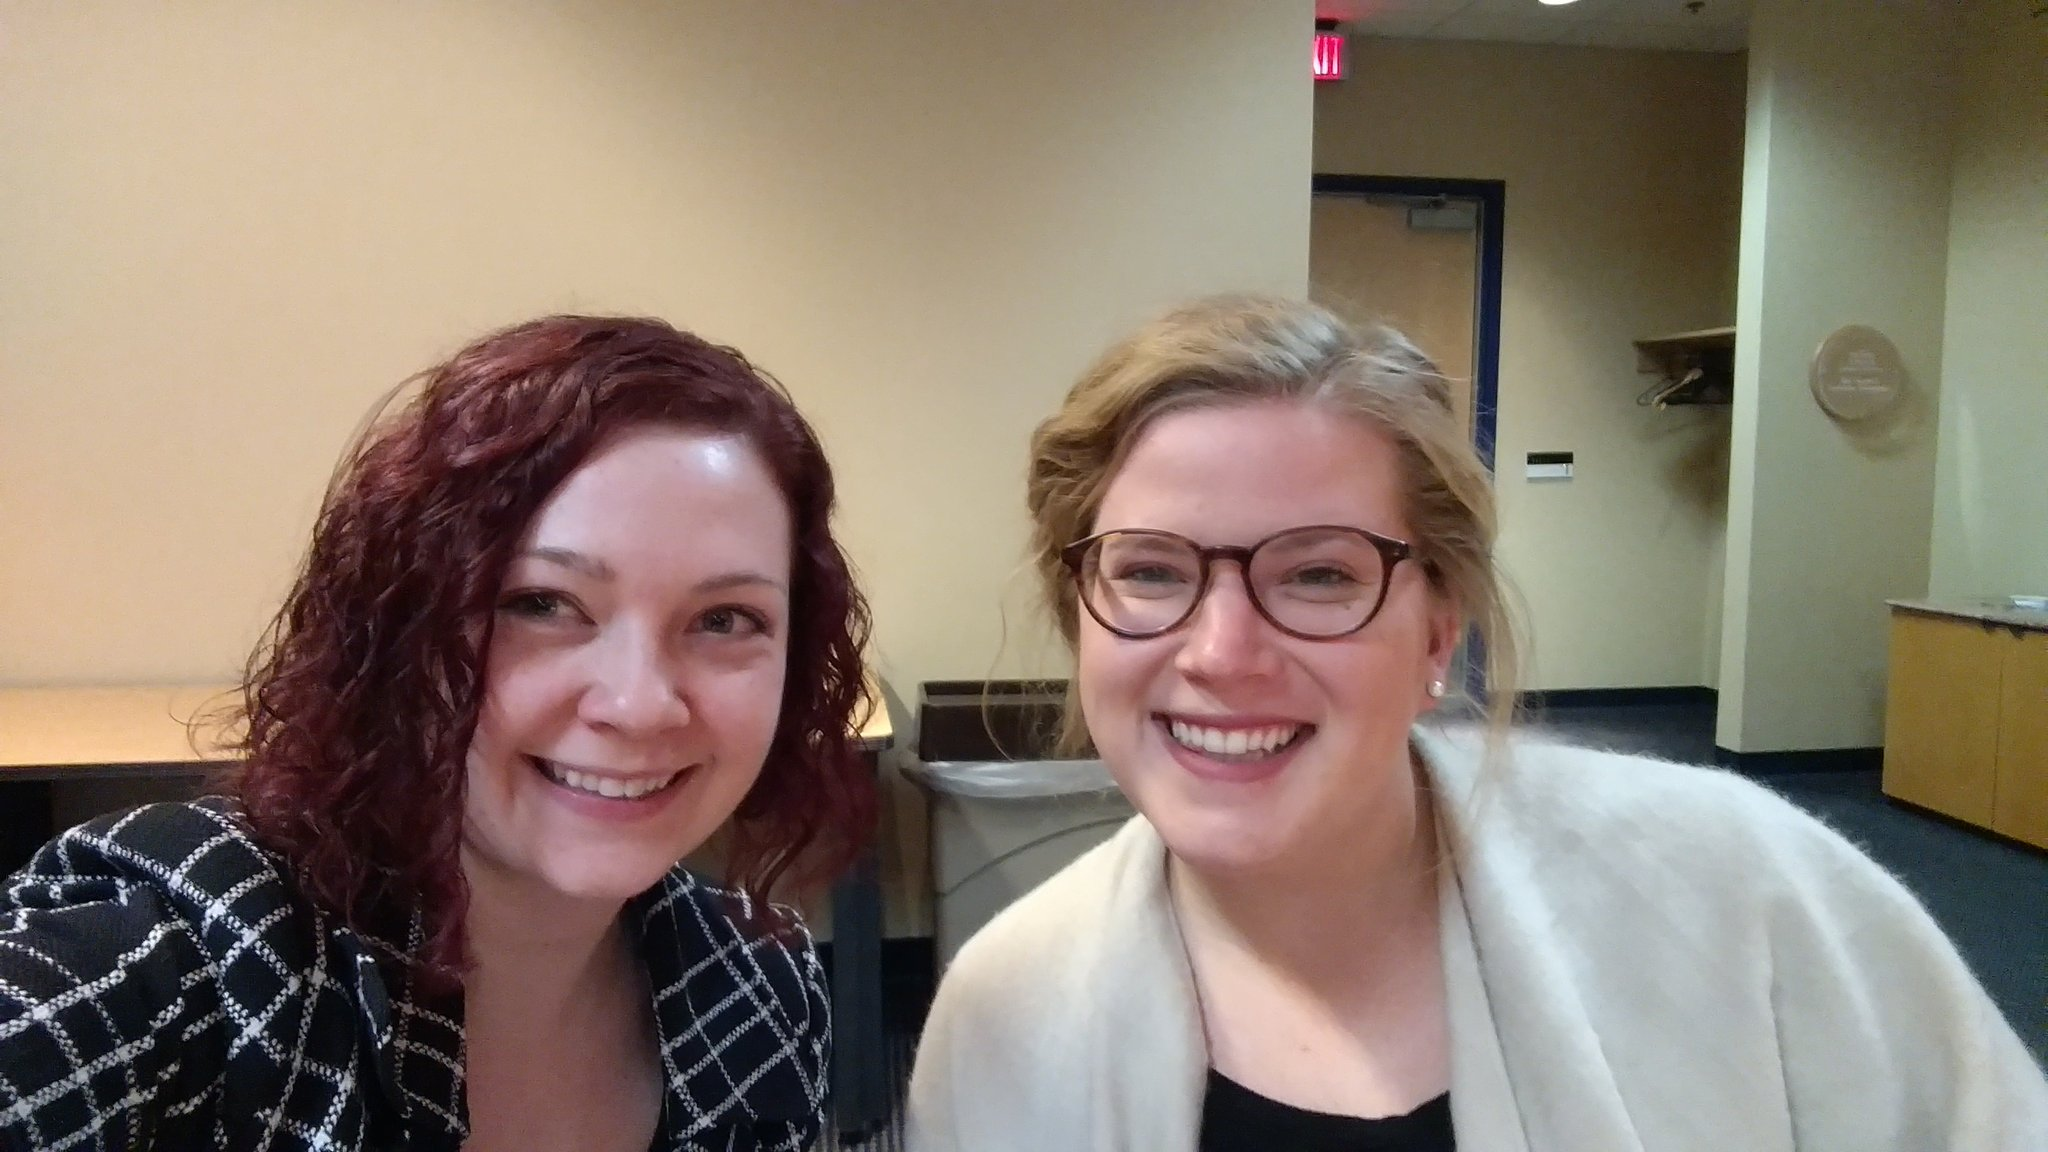 Me and @daurenluraj at the #hesm16 livestream. We are the @CMUniversity social media team. #blessed #lifeatcentral https://t.co/Yop5v0EHkx